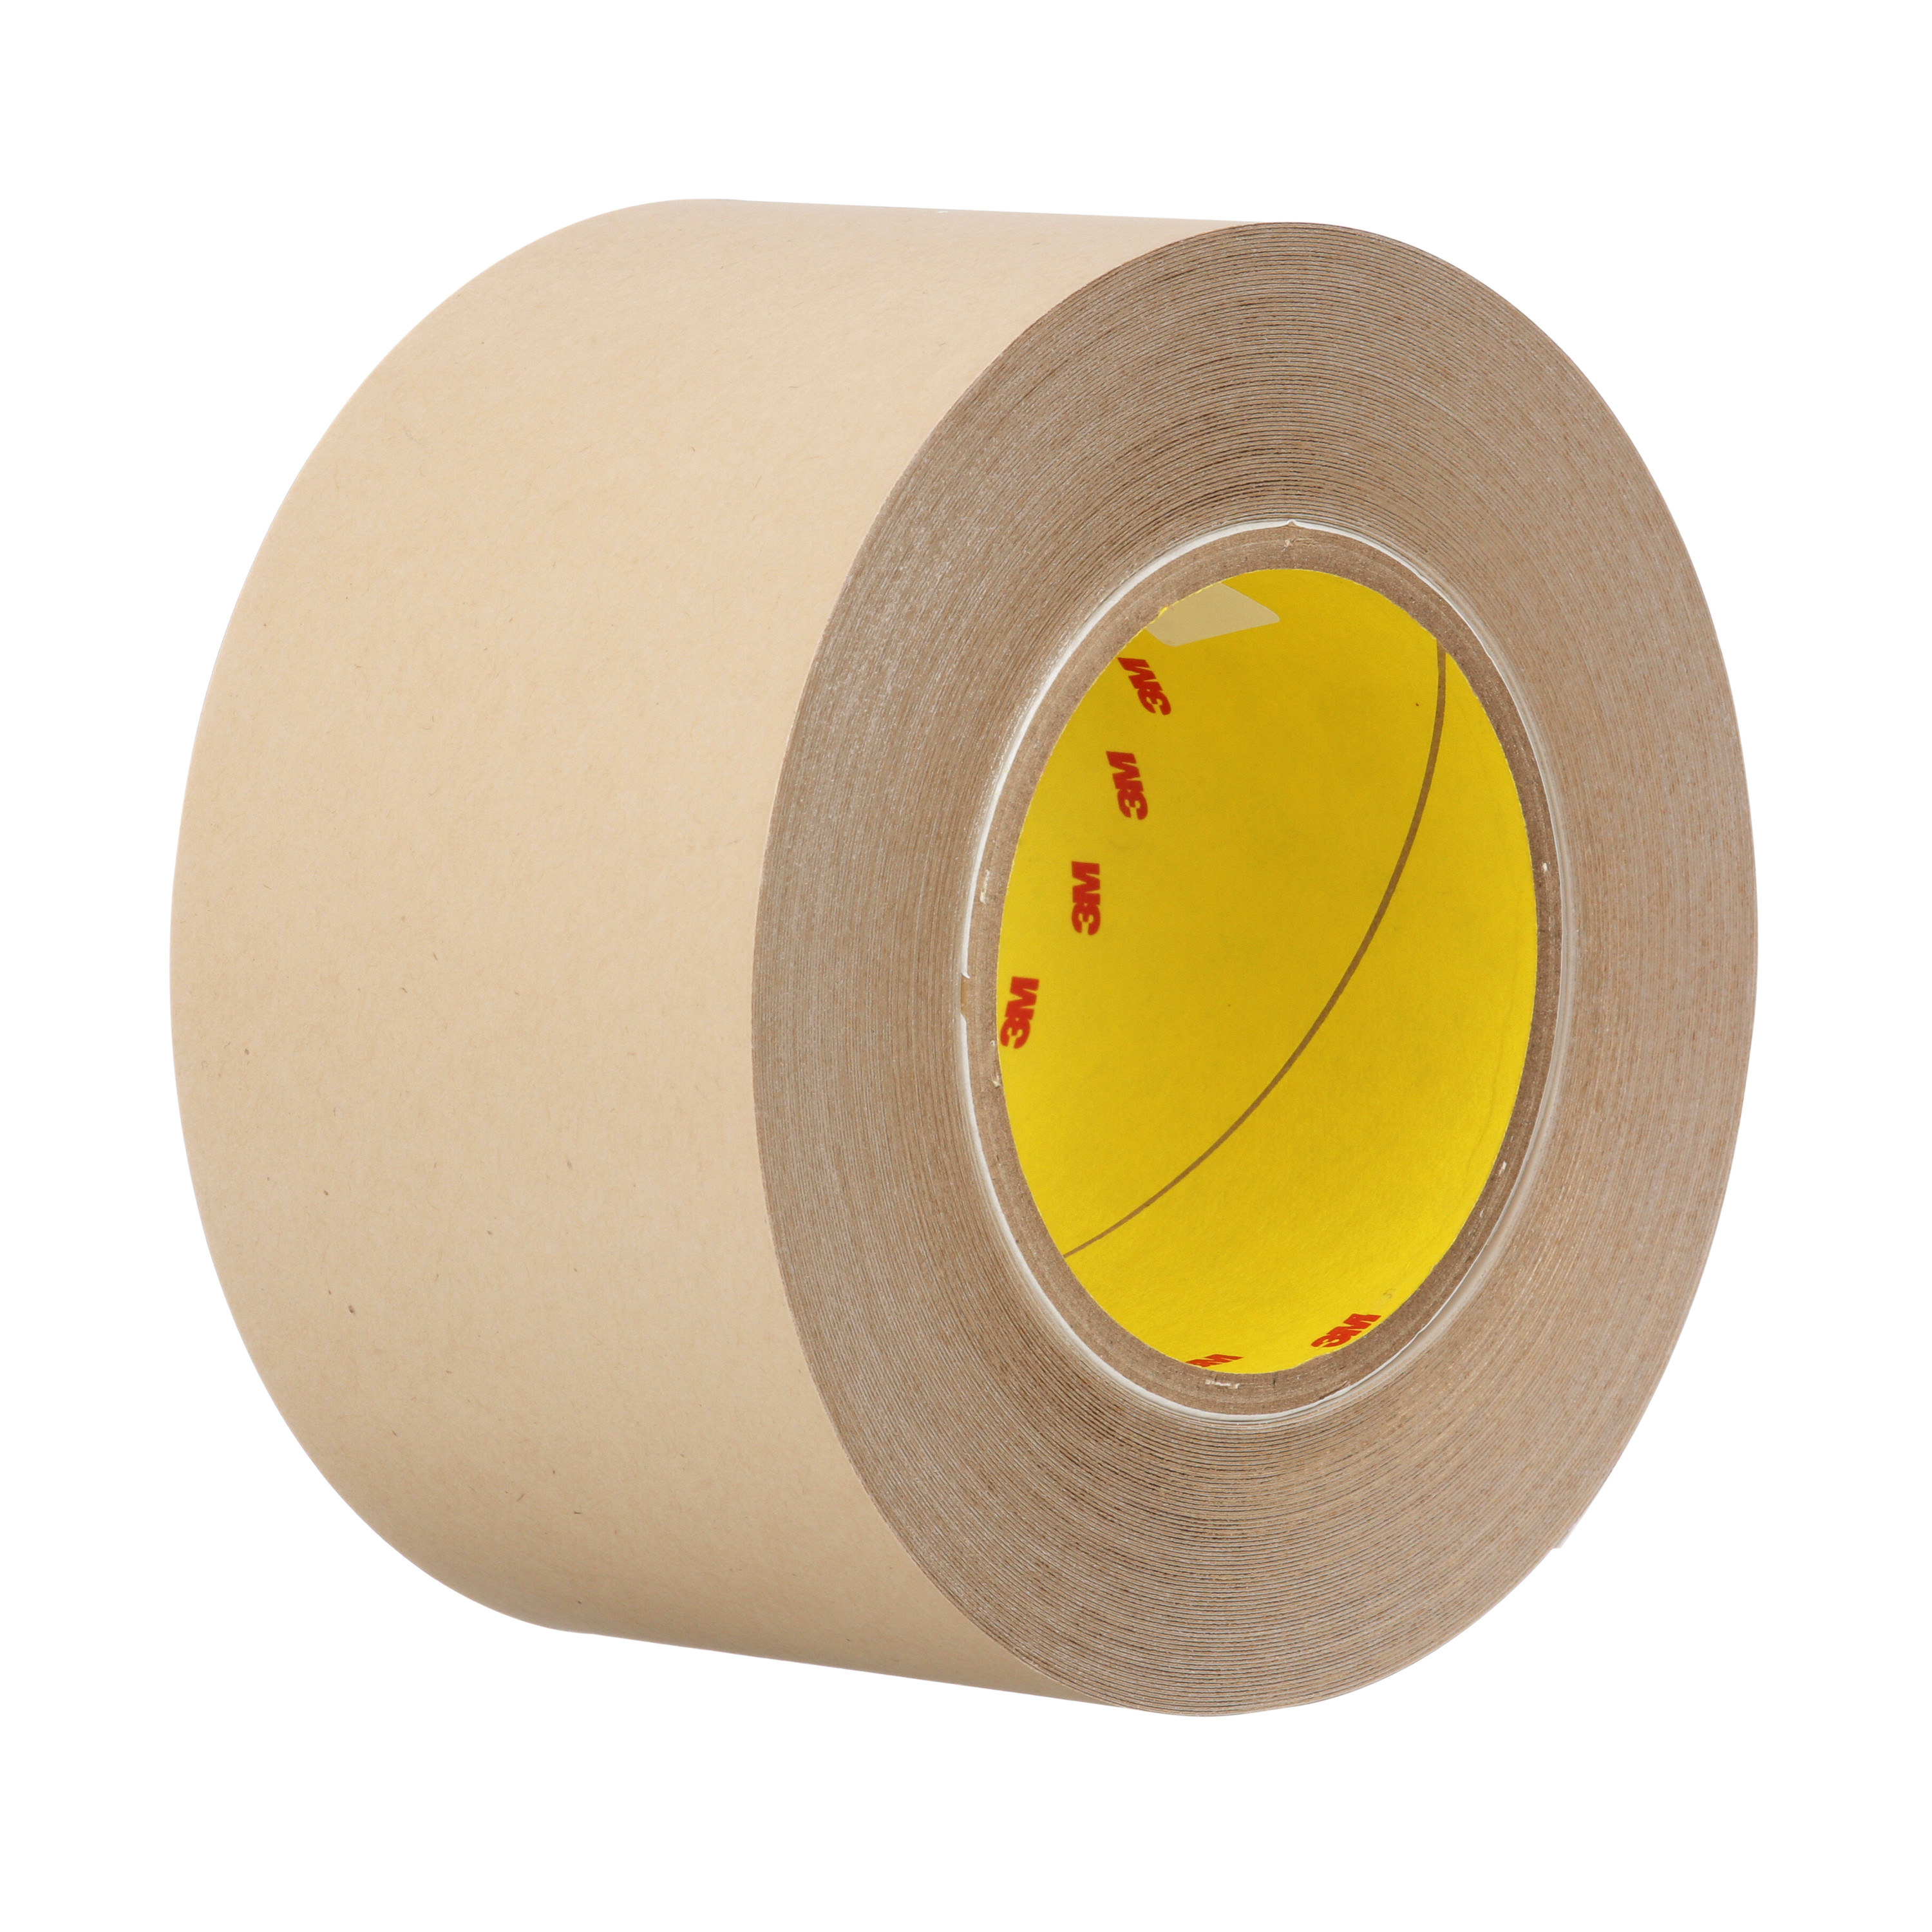 3M™ Sealing Tape 8777, Tan, 3 in x 75 ft, 12 rolls per case, Solid Liner